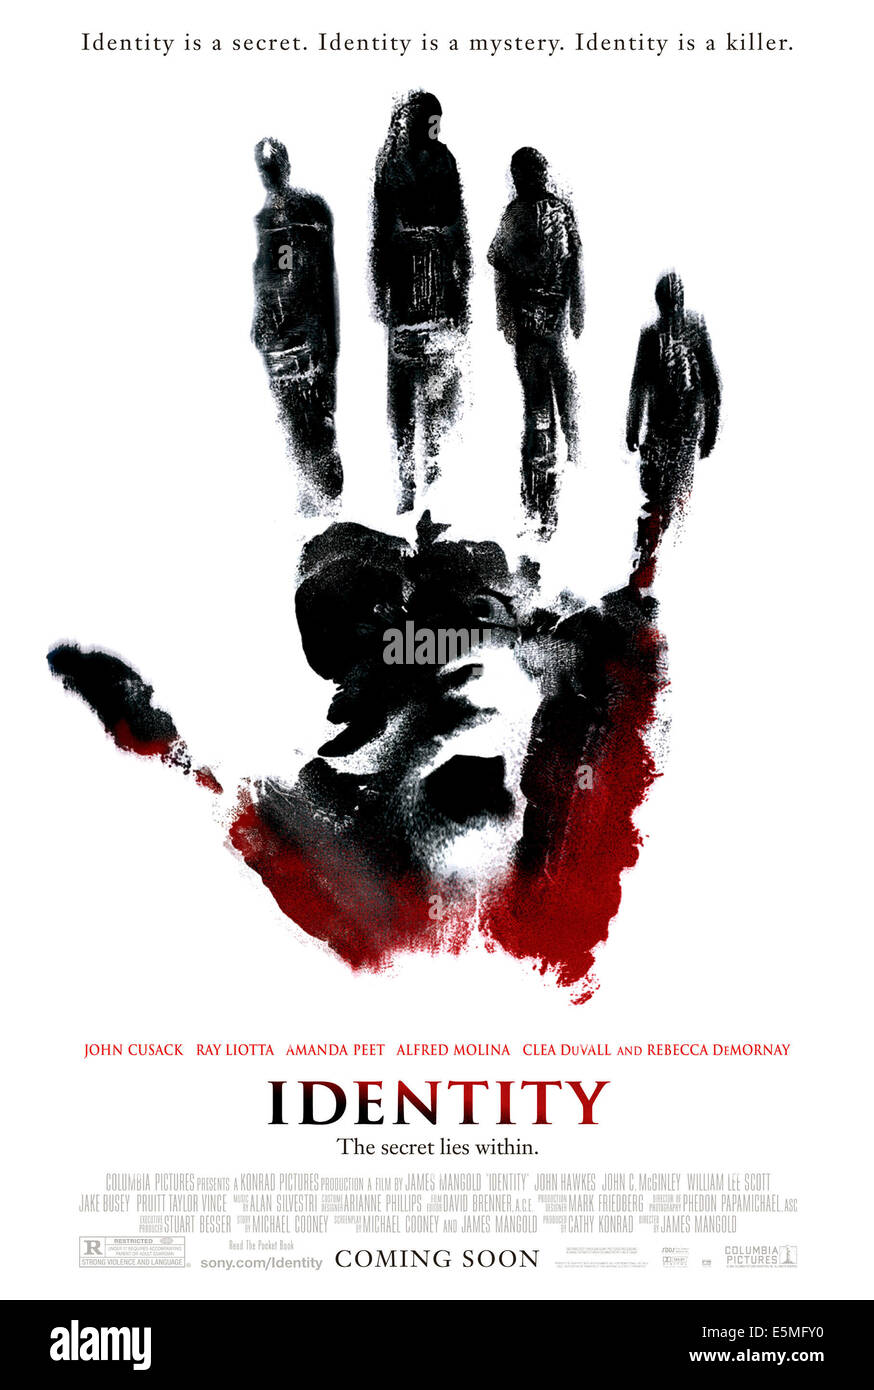 IDENTITY, 2003, (c) Columbia/courtesy Everett Collection - Stock Image